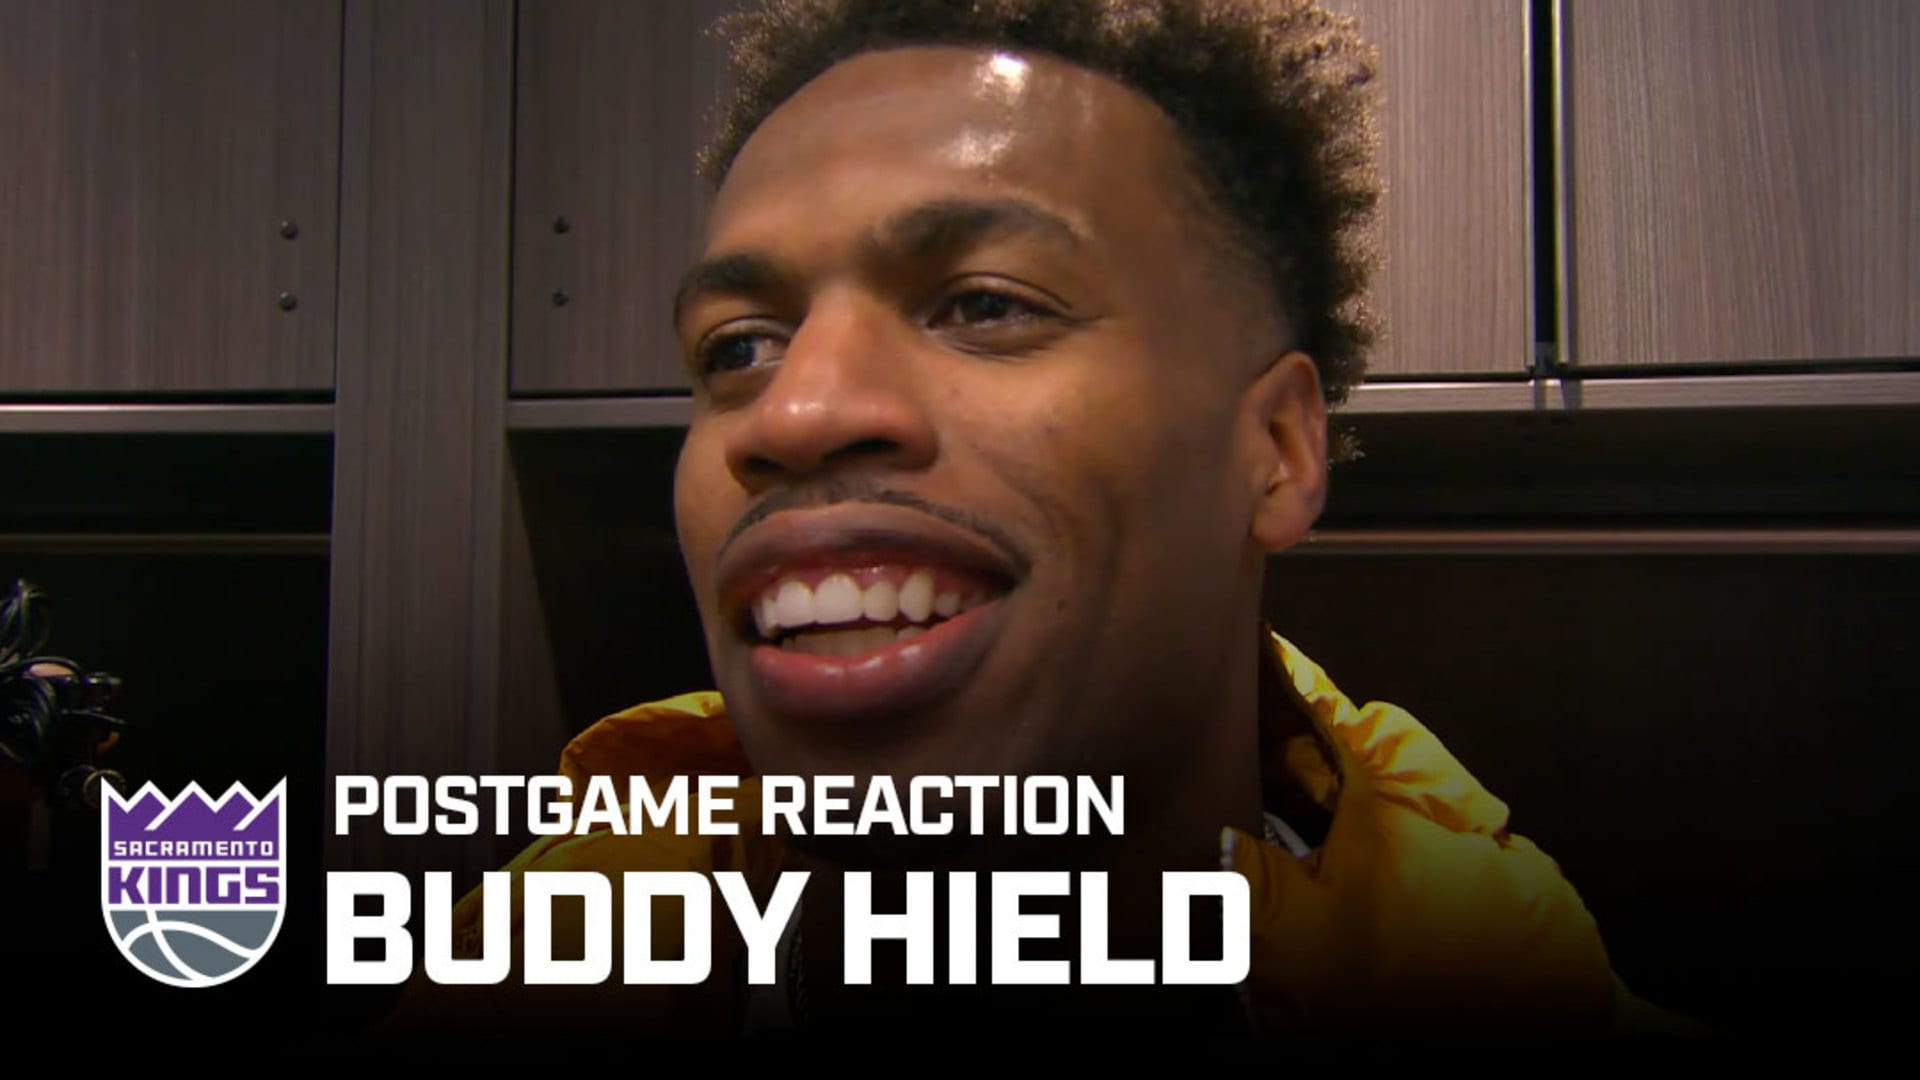 'Next Shot is the Best Shot' | Buddy Hield Postgame Reaction 11.30.19